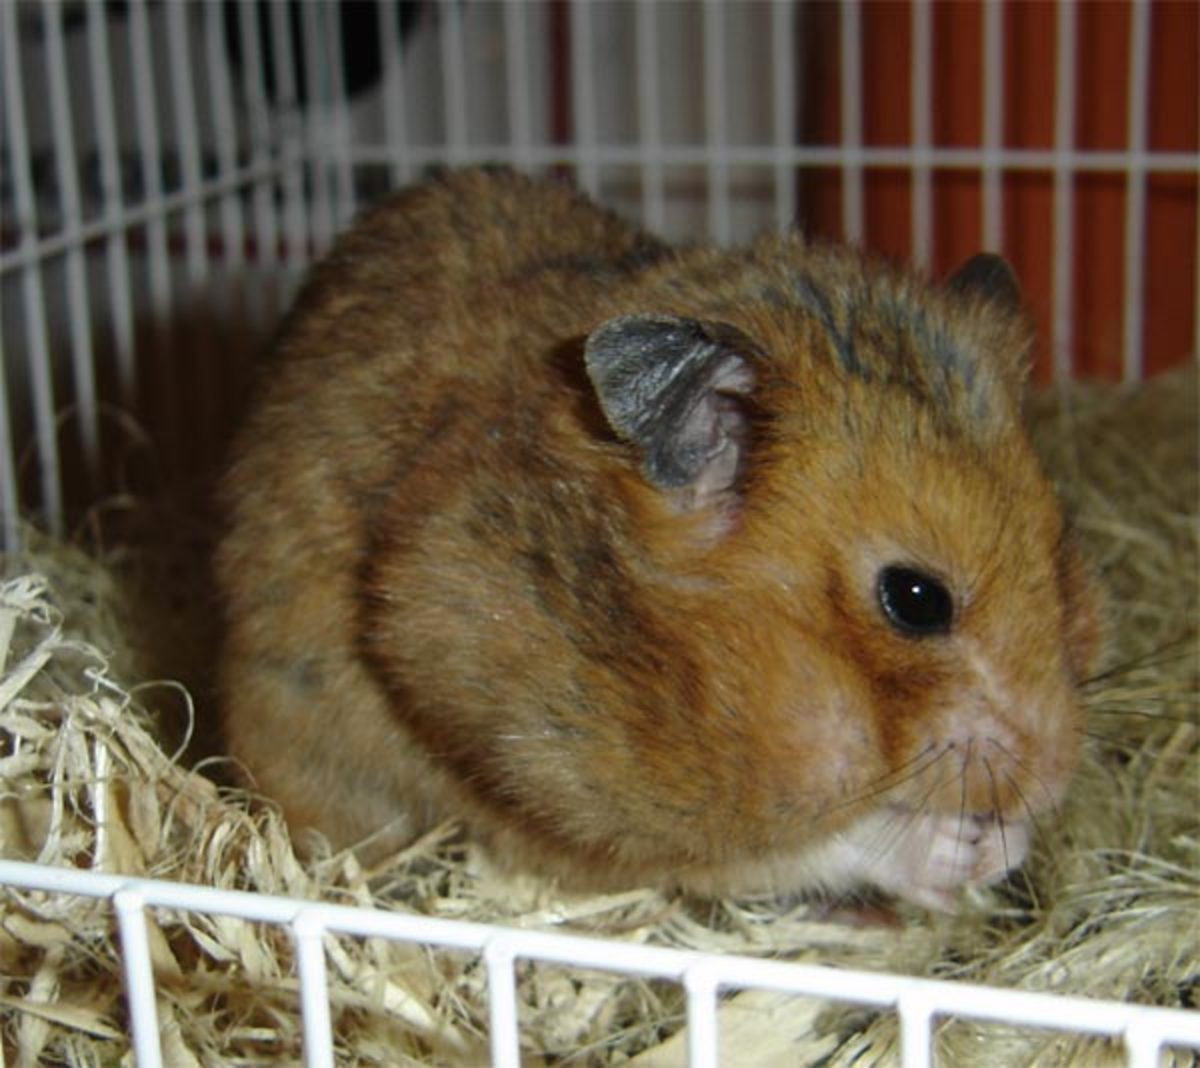 How to Care for Pet Hamsters: Behavior, Diet, and Housing